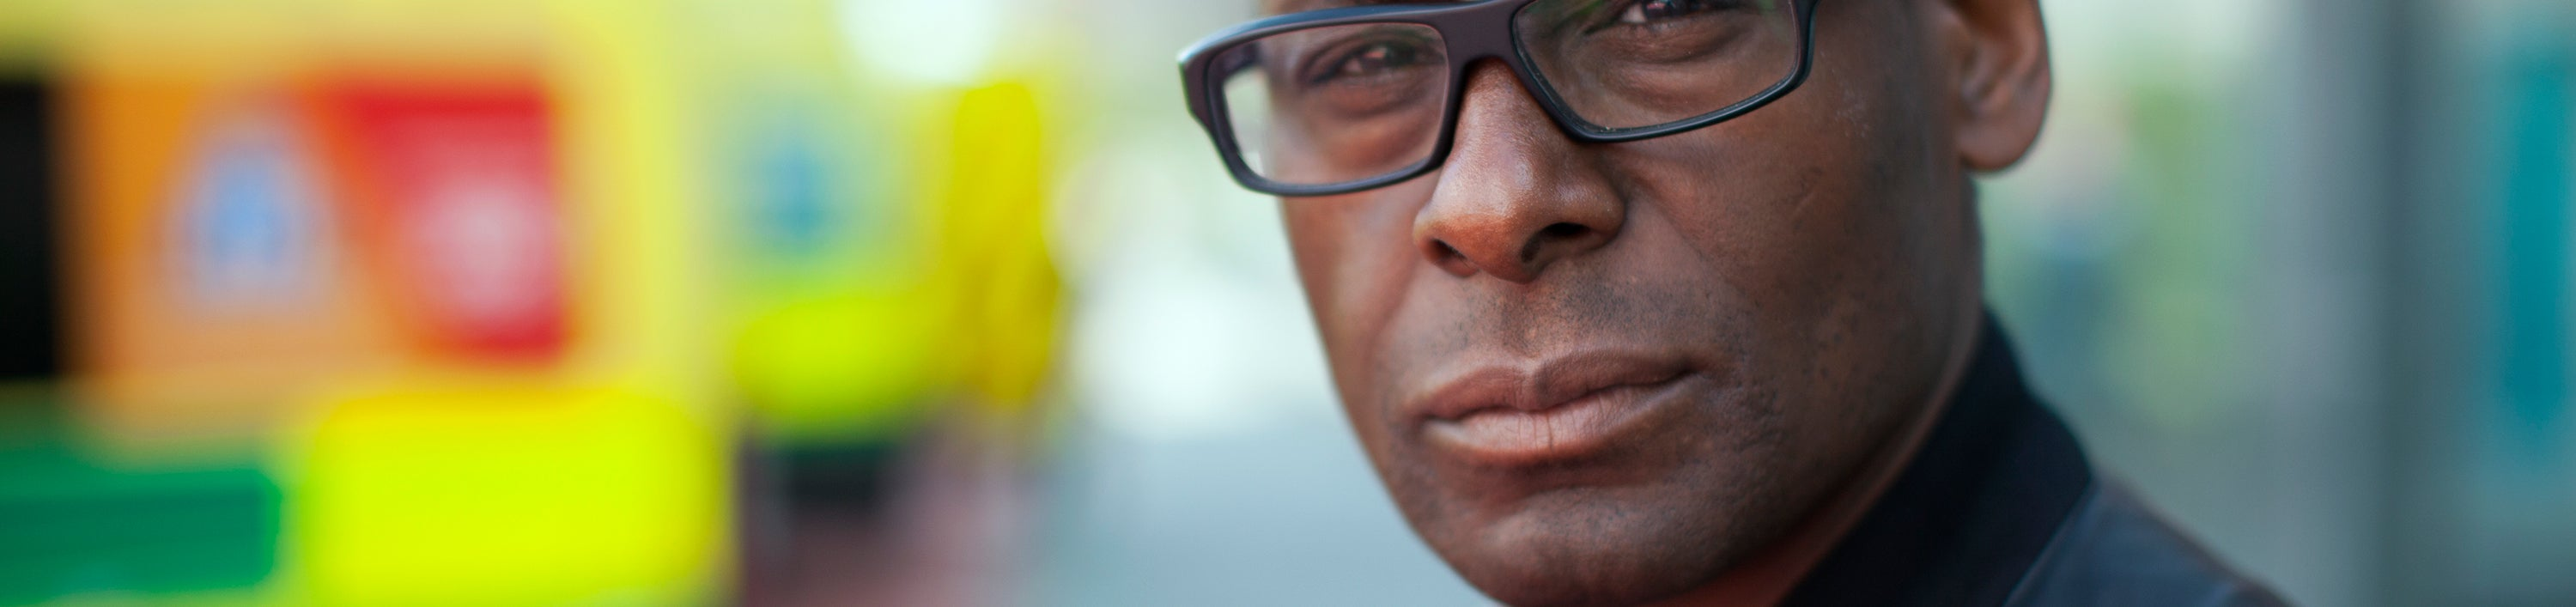 David Harewood - Psychosis and Me - David stands in front of an ambulance